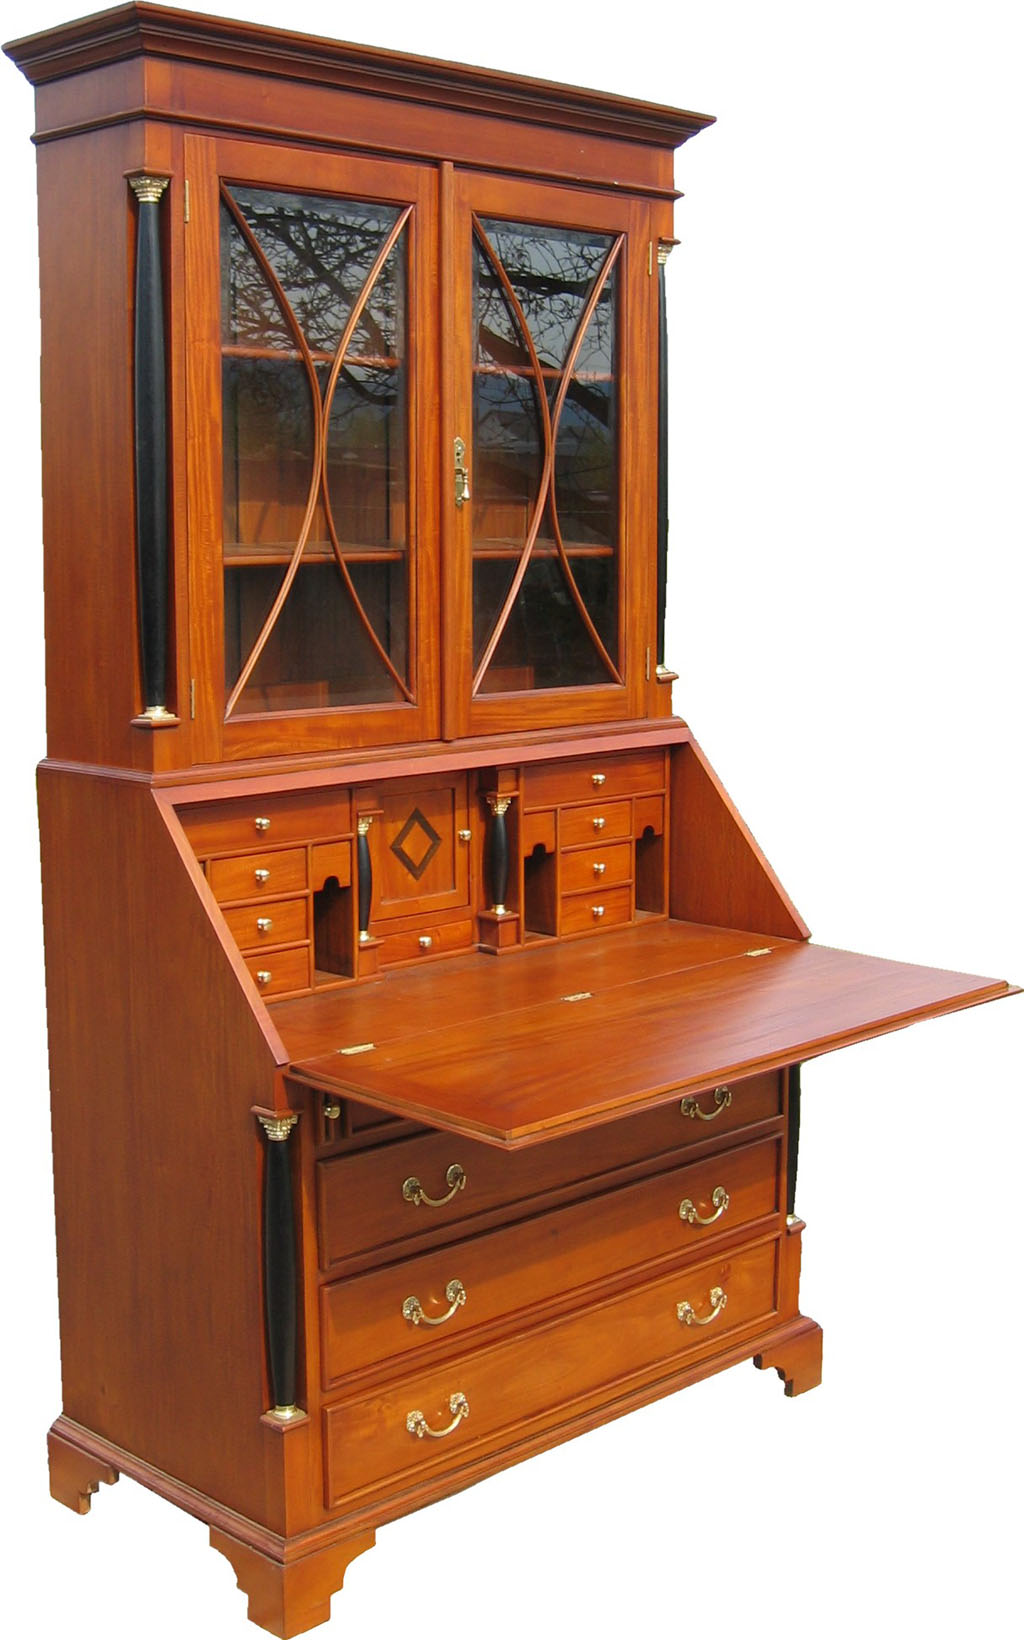 biedermeier m bel antik schreibtisch vitrine kommode. Black Bedroom Furniture Sets. Home Design Ideas